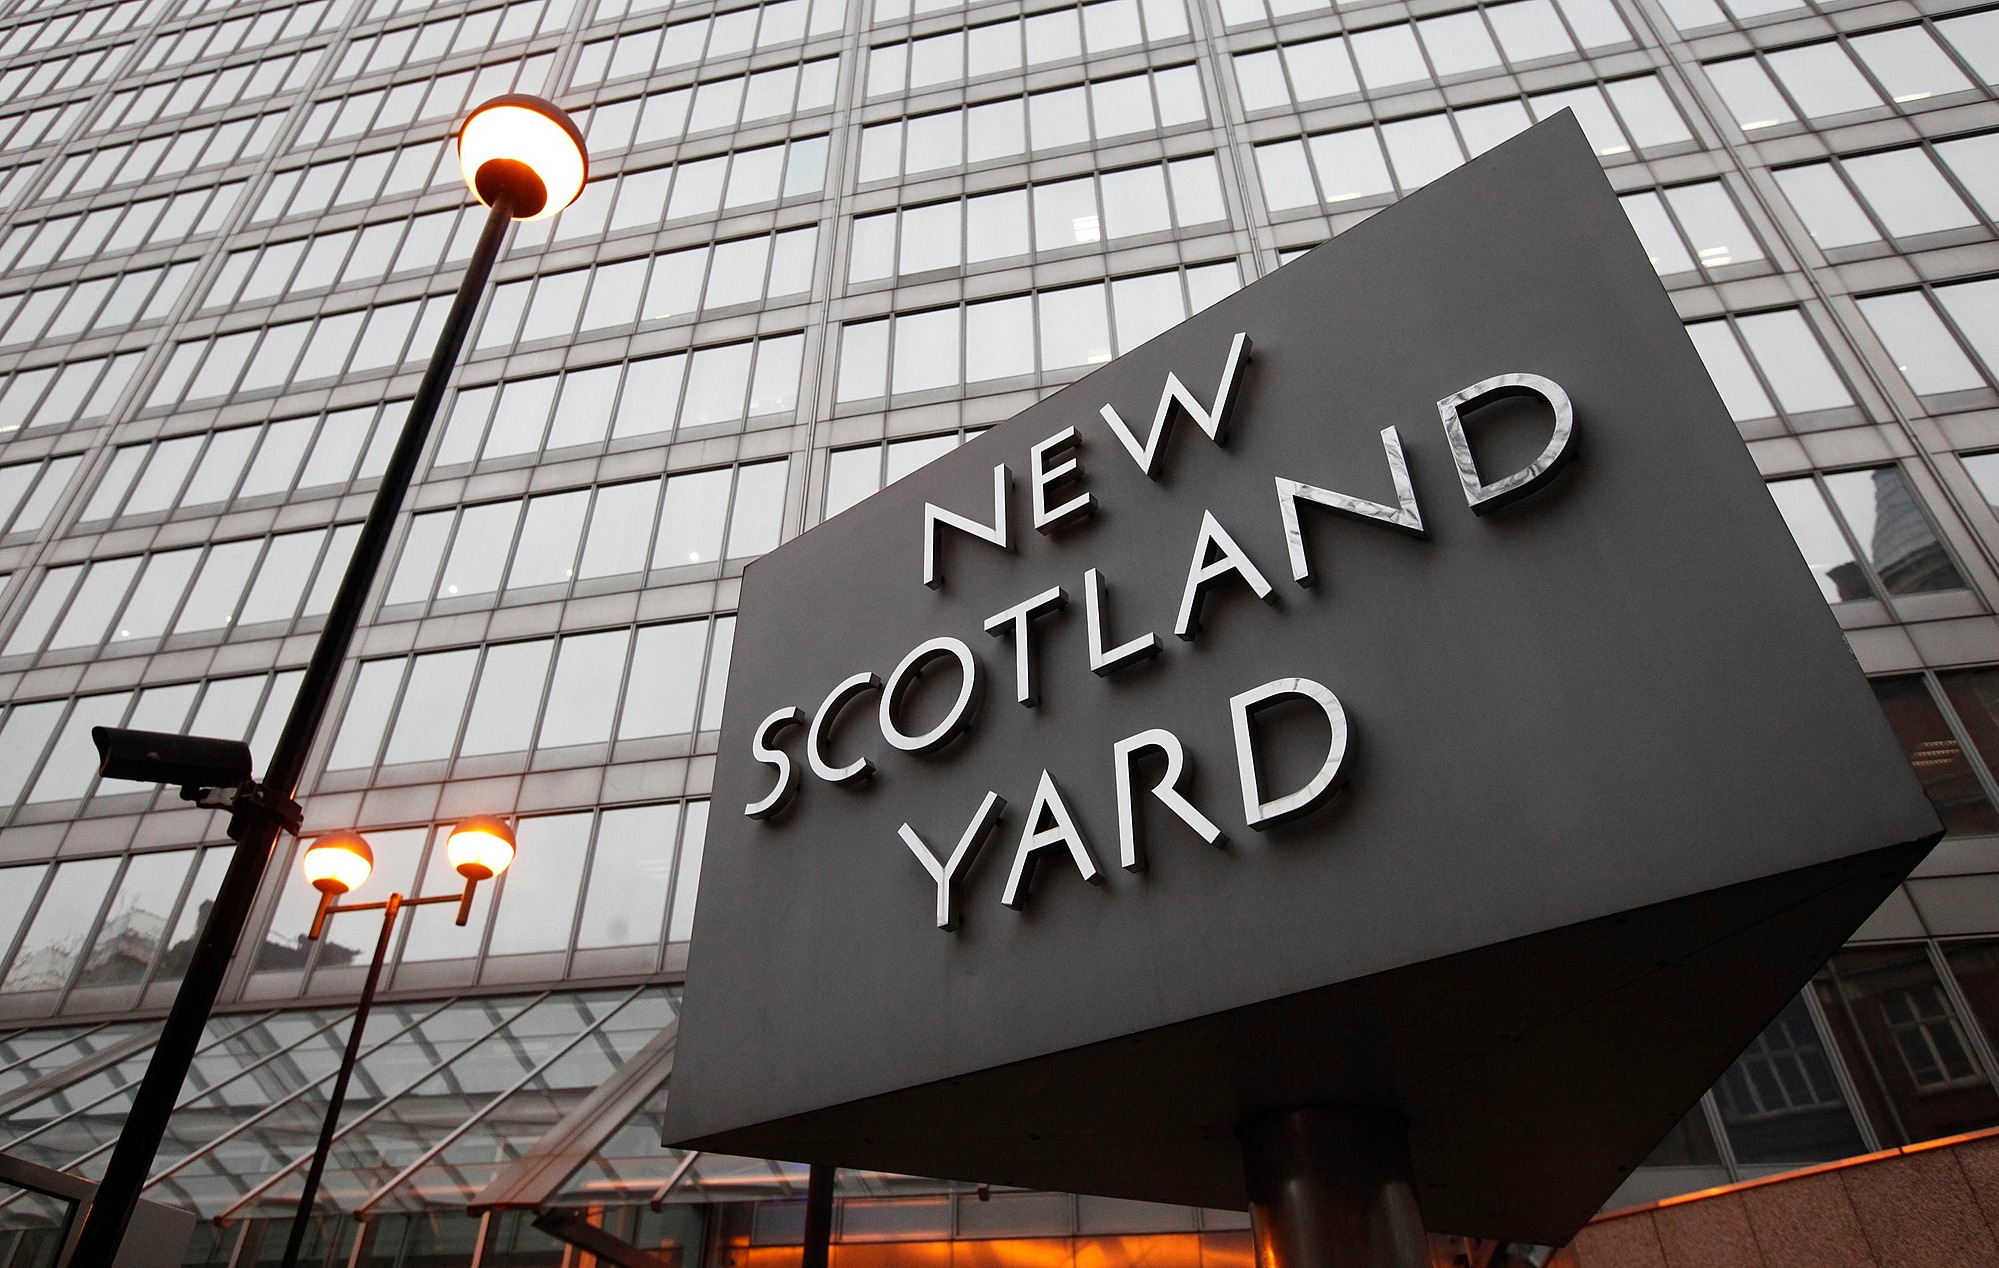 New Scotland Yard, London Metropolitan Police headquarters, is located in Westminster.  Photo: Reuters.